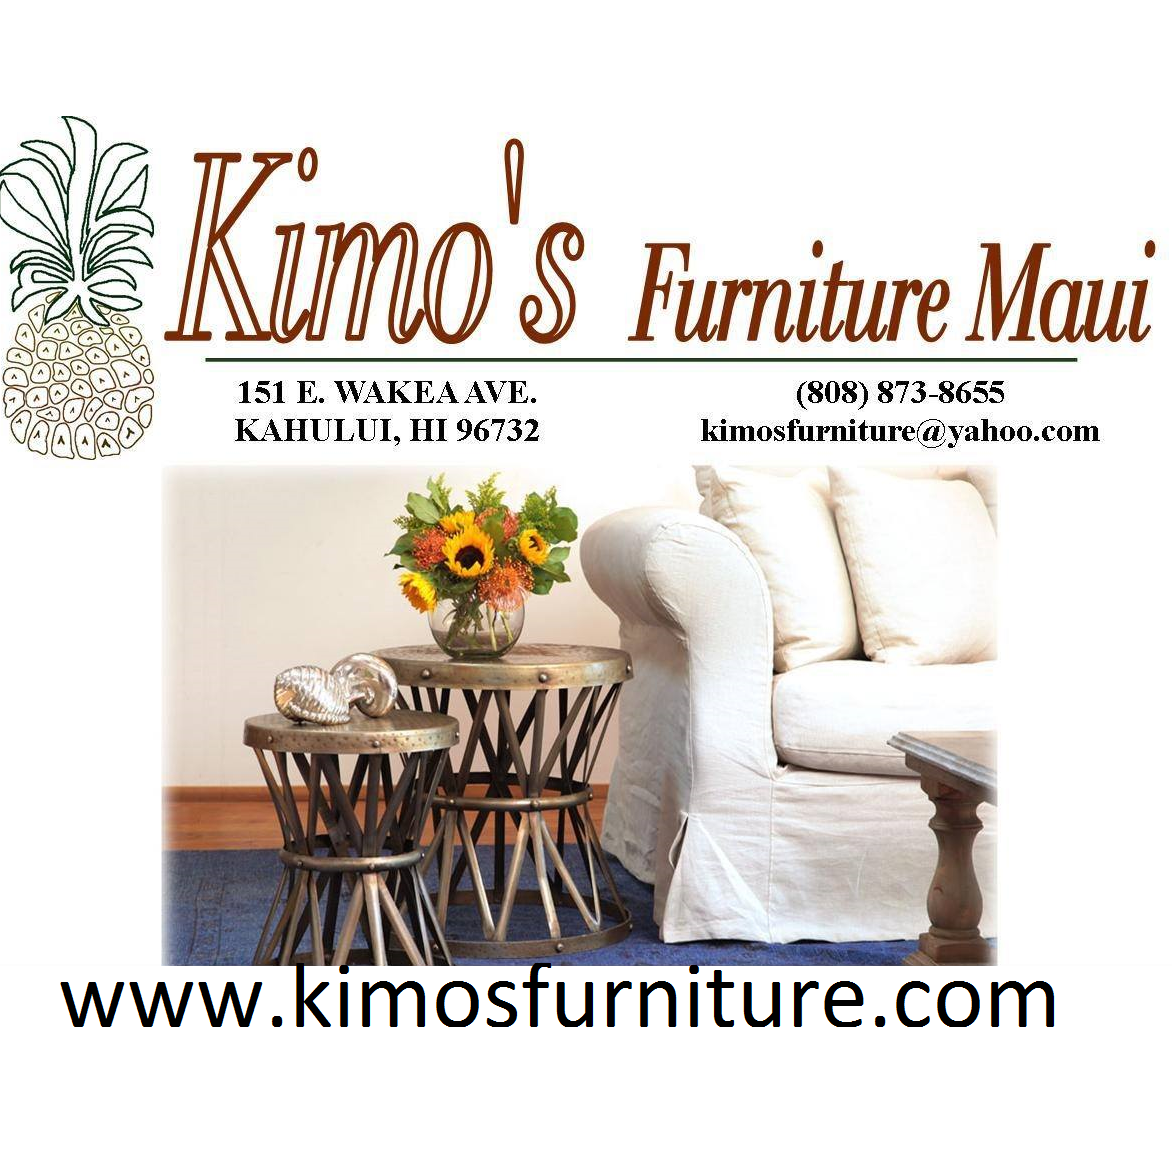 Kimos Furniture Maui image 39